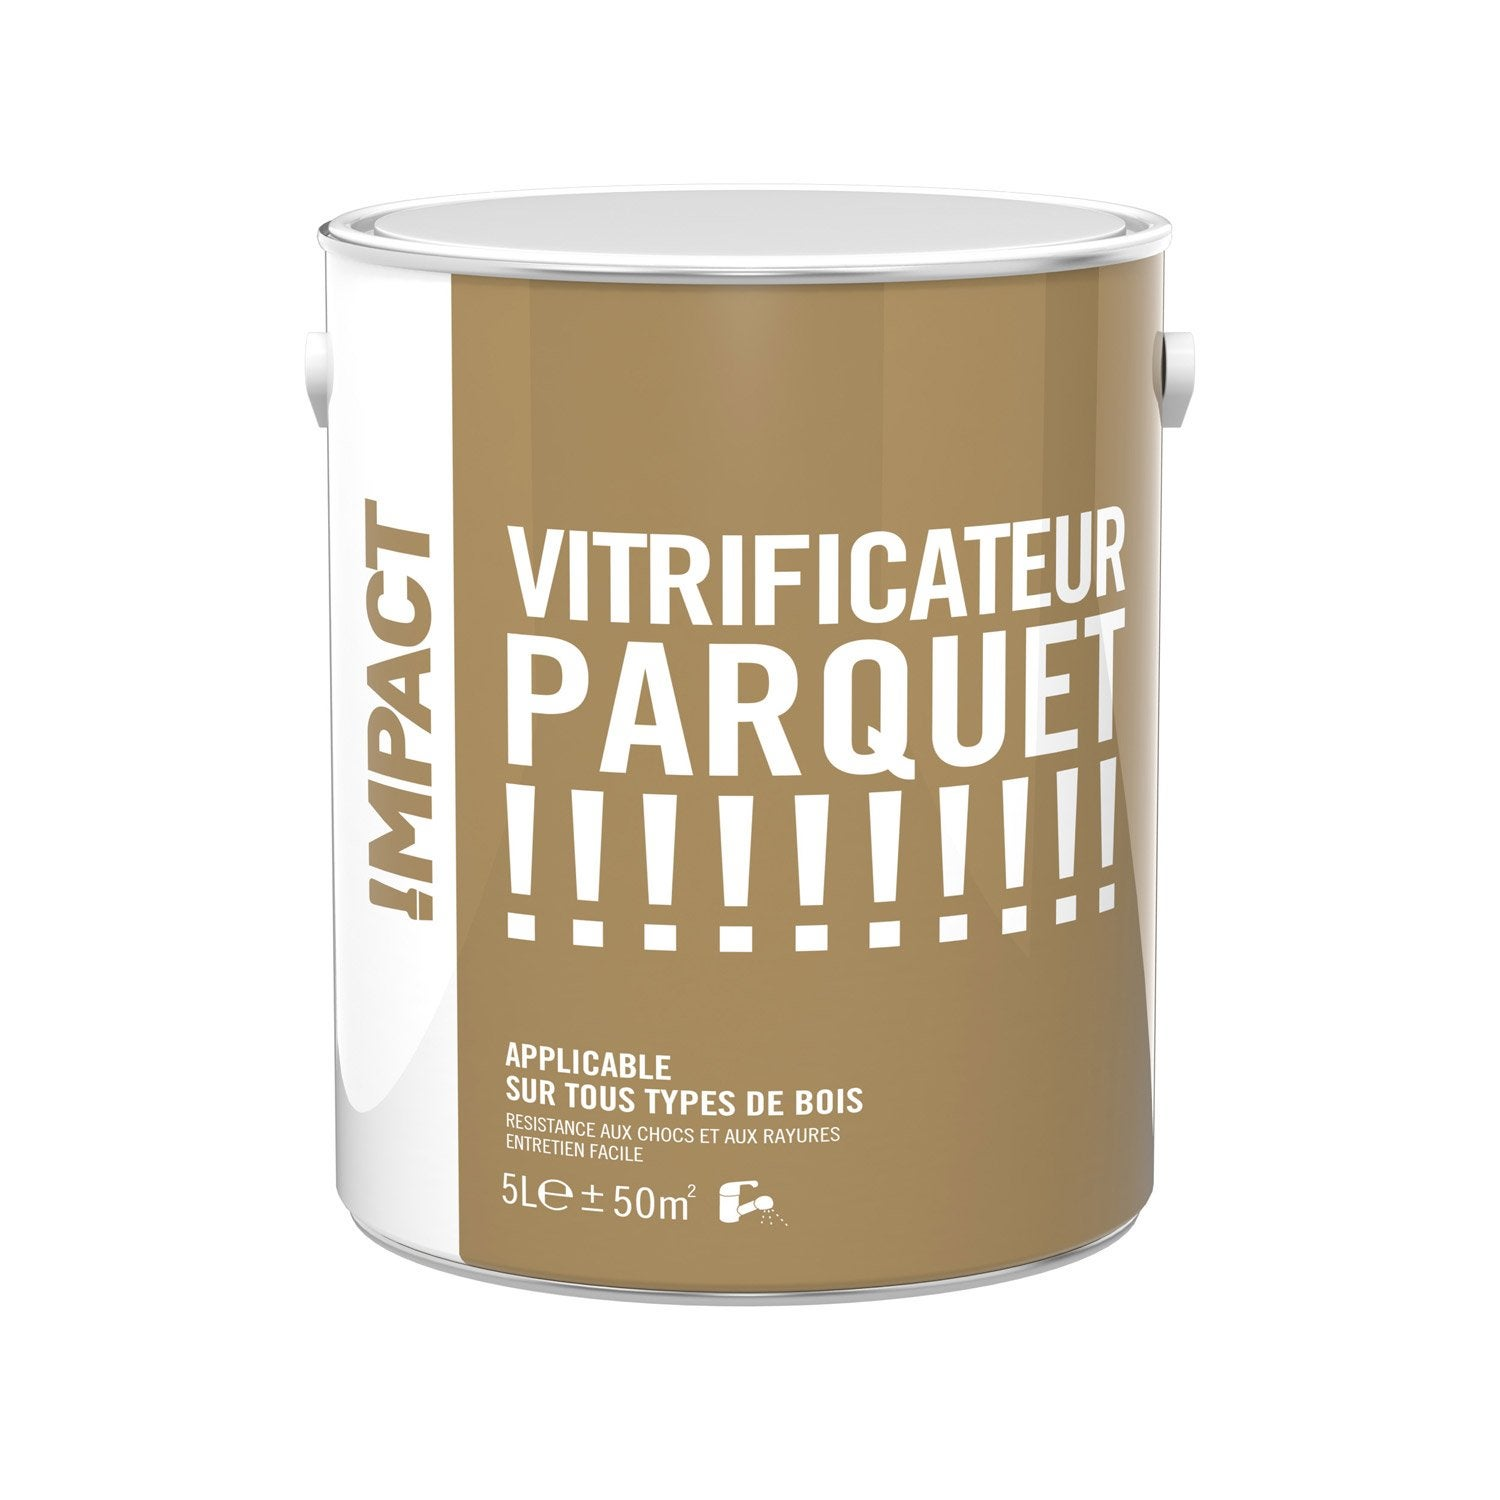 vitrificateur parquet impact ch ne clair 5 l leroy merlin. Black Bedroom Furniture Sets. Home Design Ideas